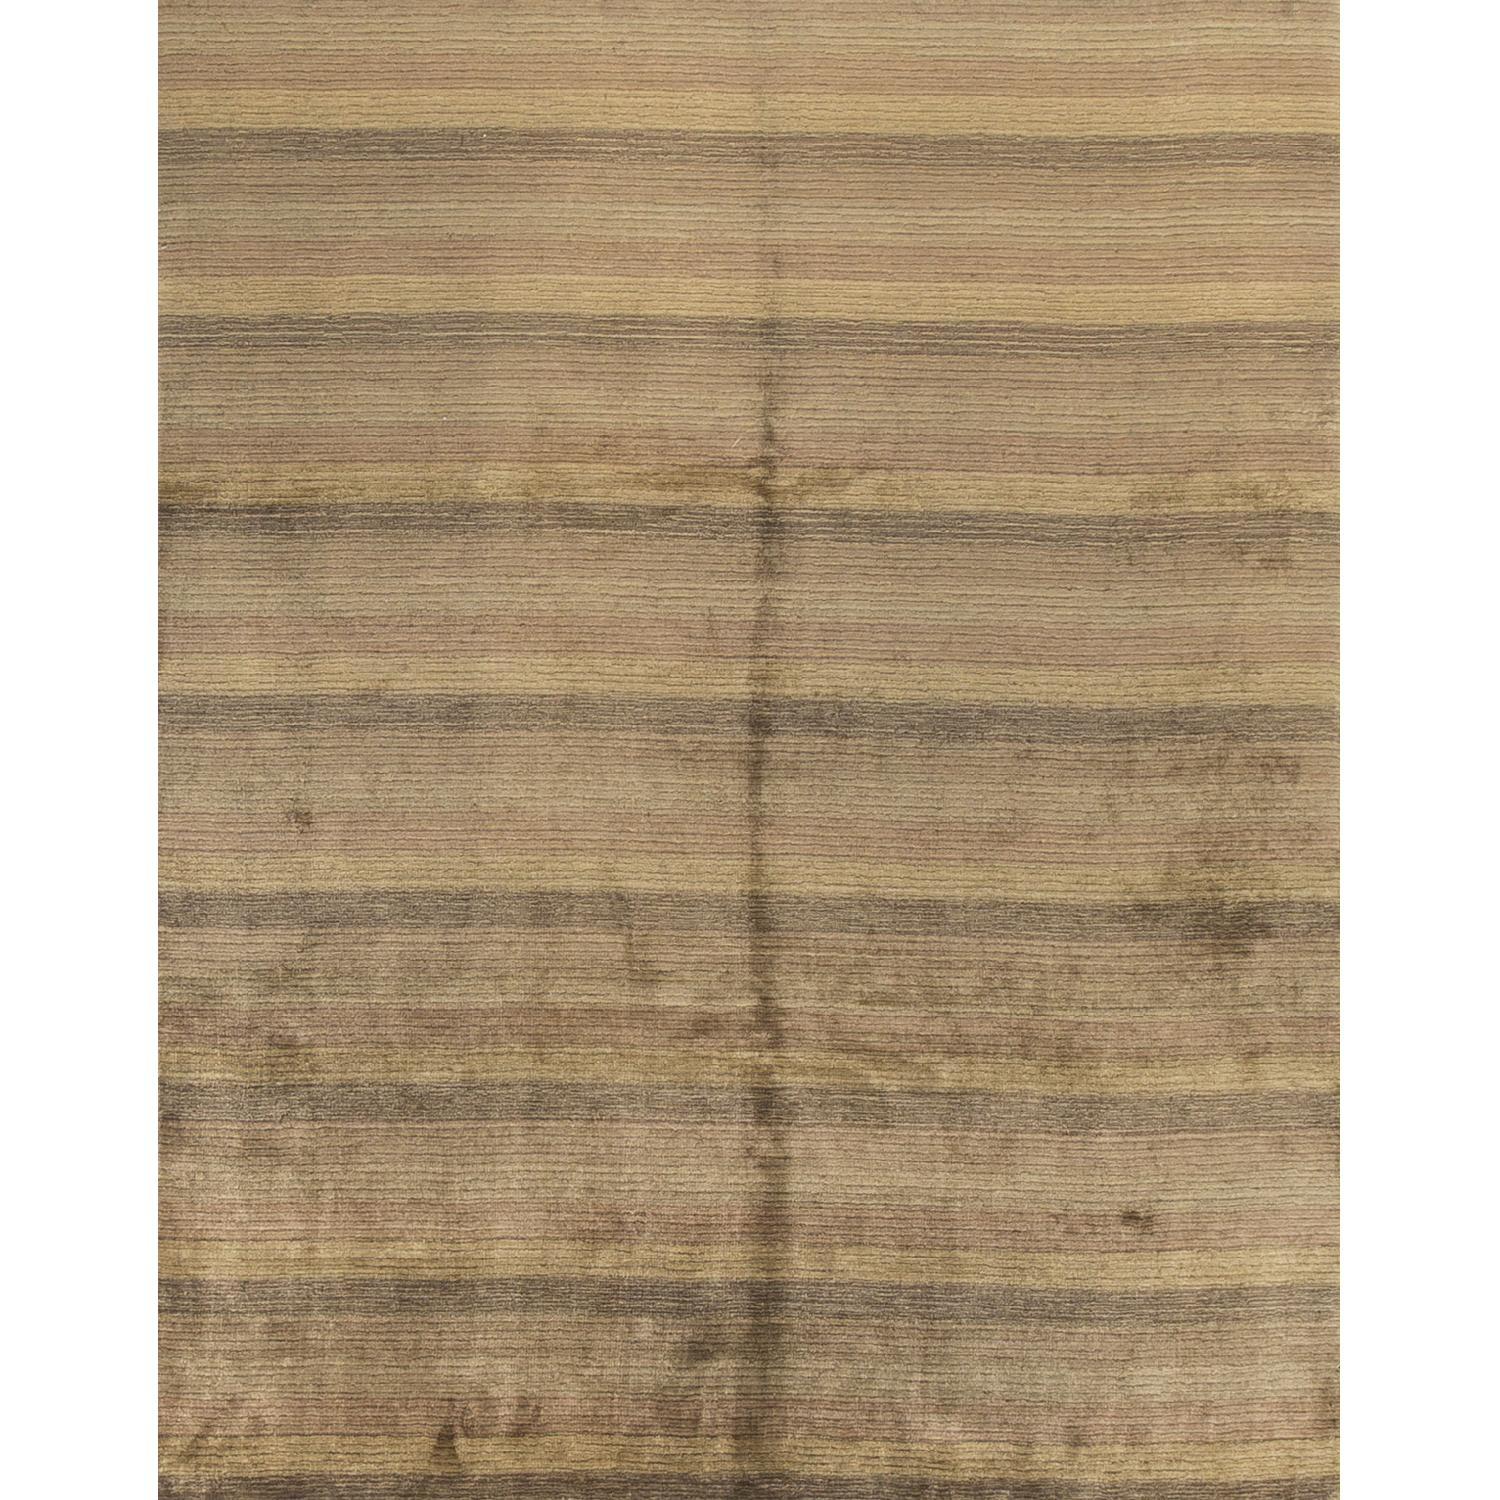 Modern Contemporary Hand Knotted Wool Rug in Multi Colors - image-0